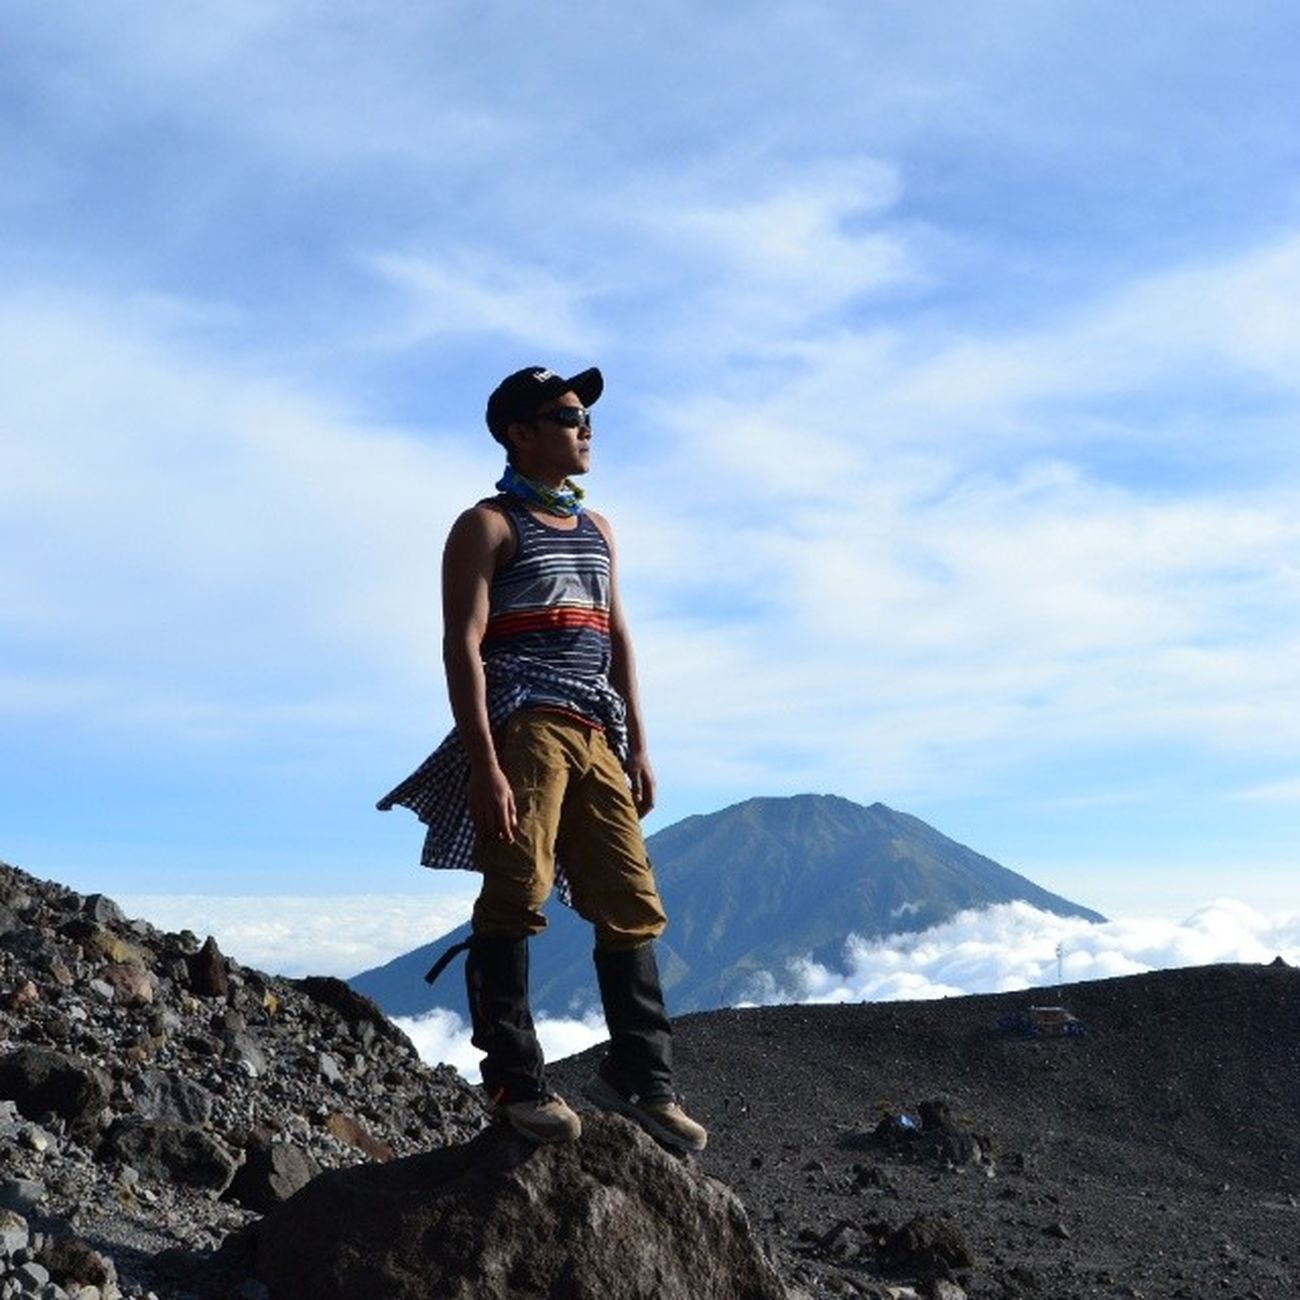 Berasa model muehehehe Photography Photogenic  Kameraslrgue Skyhigh skyland instajava instasunda instanaturefriends instanusantara indonesia_bagus indonesiagetaway photooftheday likeforlike like4like instamood instagood Mountainer